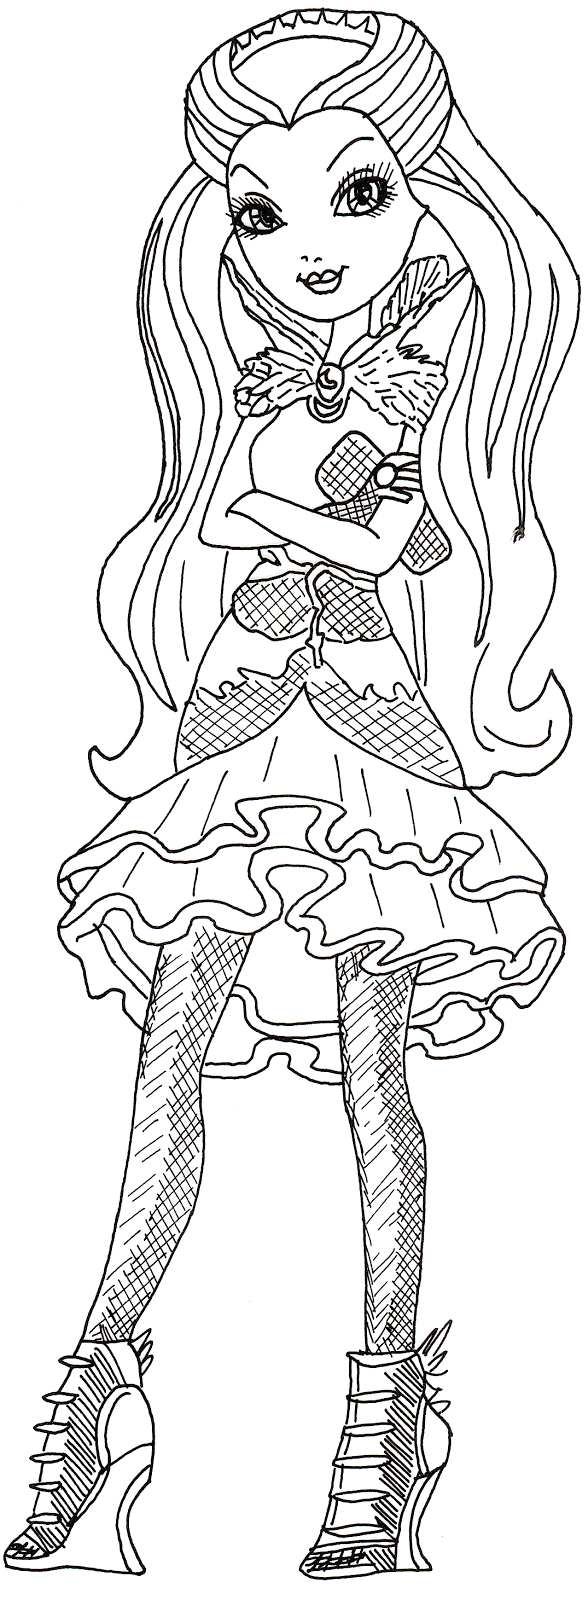 Raven Queen Ever after High Coloring Pages All About Ever after High Dolls Raven Queen Coloring Page